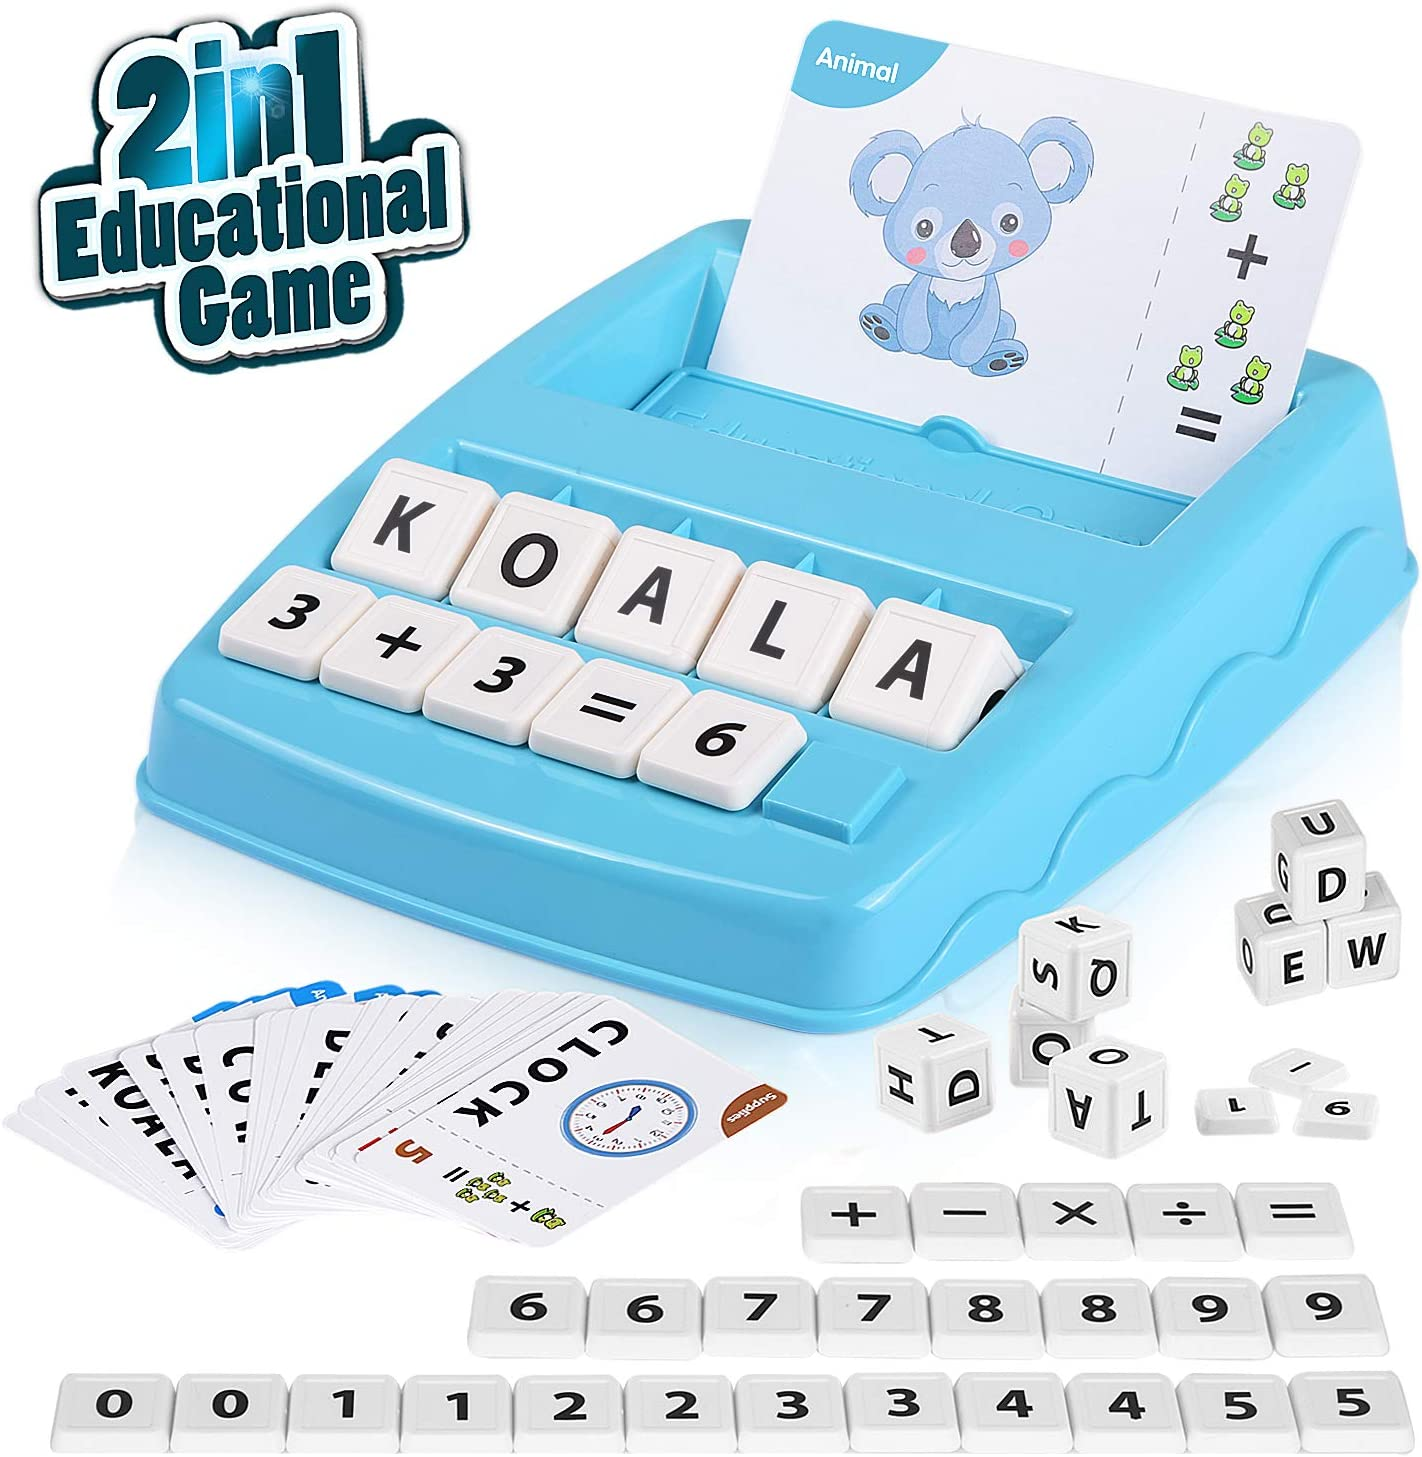 Word /& Objects /& Color Number /& Arithmetical Operation Matching Letters and Arithmetic Learning Toy for Preschool Kindergarten Girls Boys Age 3 Up Educational Game -2in1 Reading /& Spelling